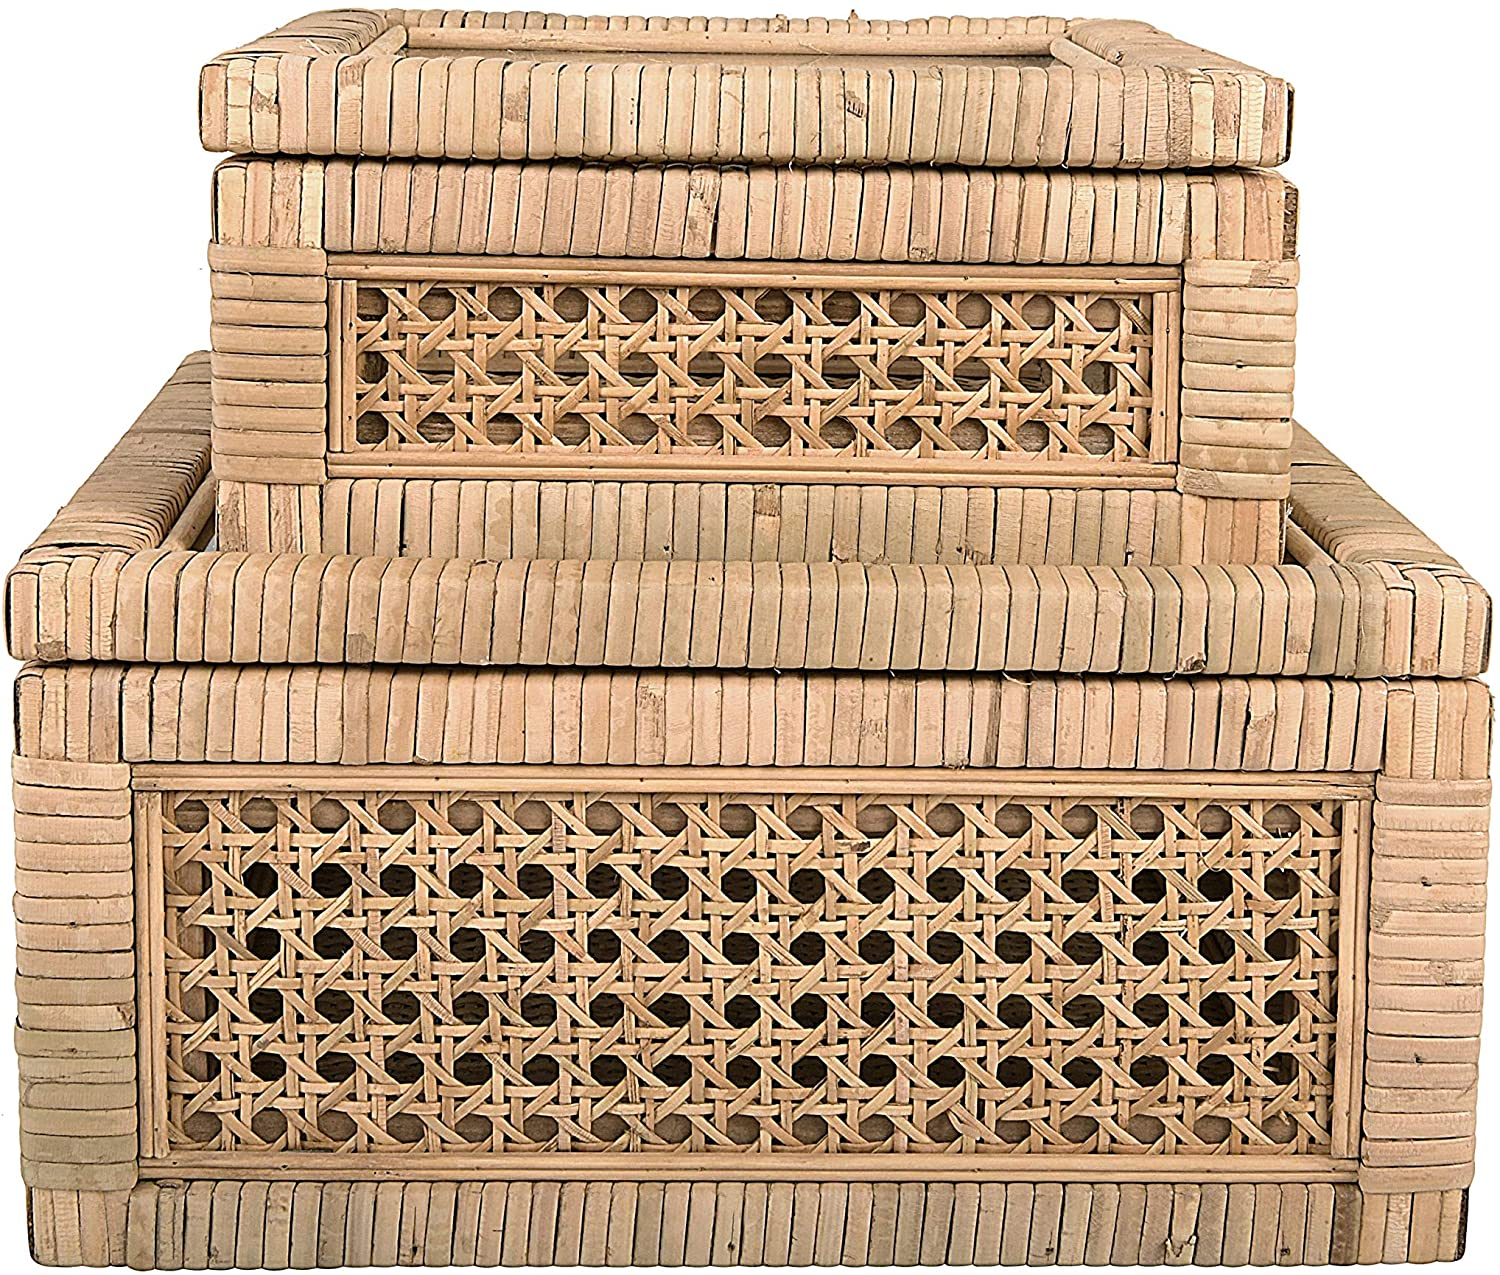 fall tabletop pieces from Creative Co-Op Cane and Rattan Glass Lid, Set of 2 Display Boxes